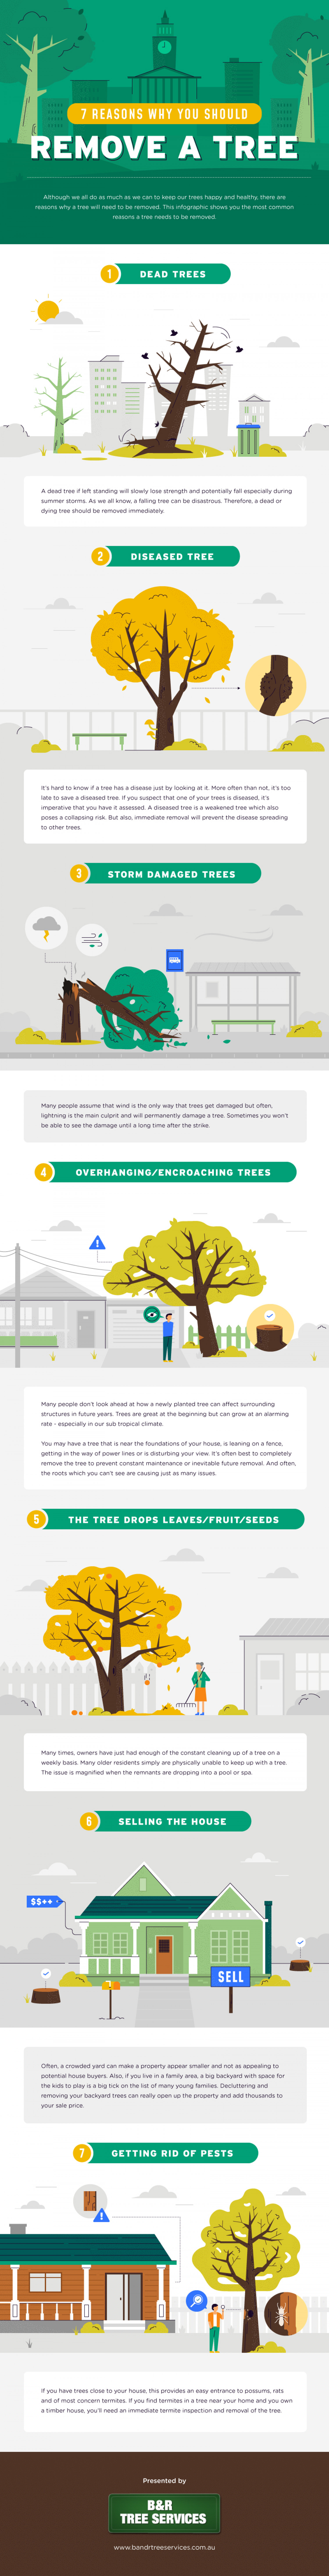 7 Reasons Why You Should Remove a Tree Infographic